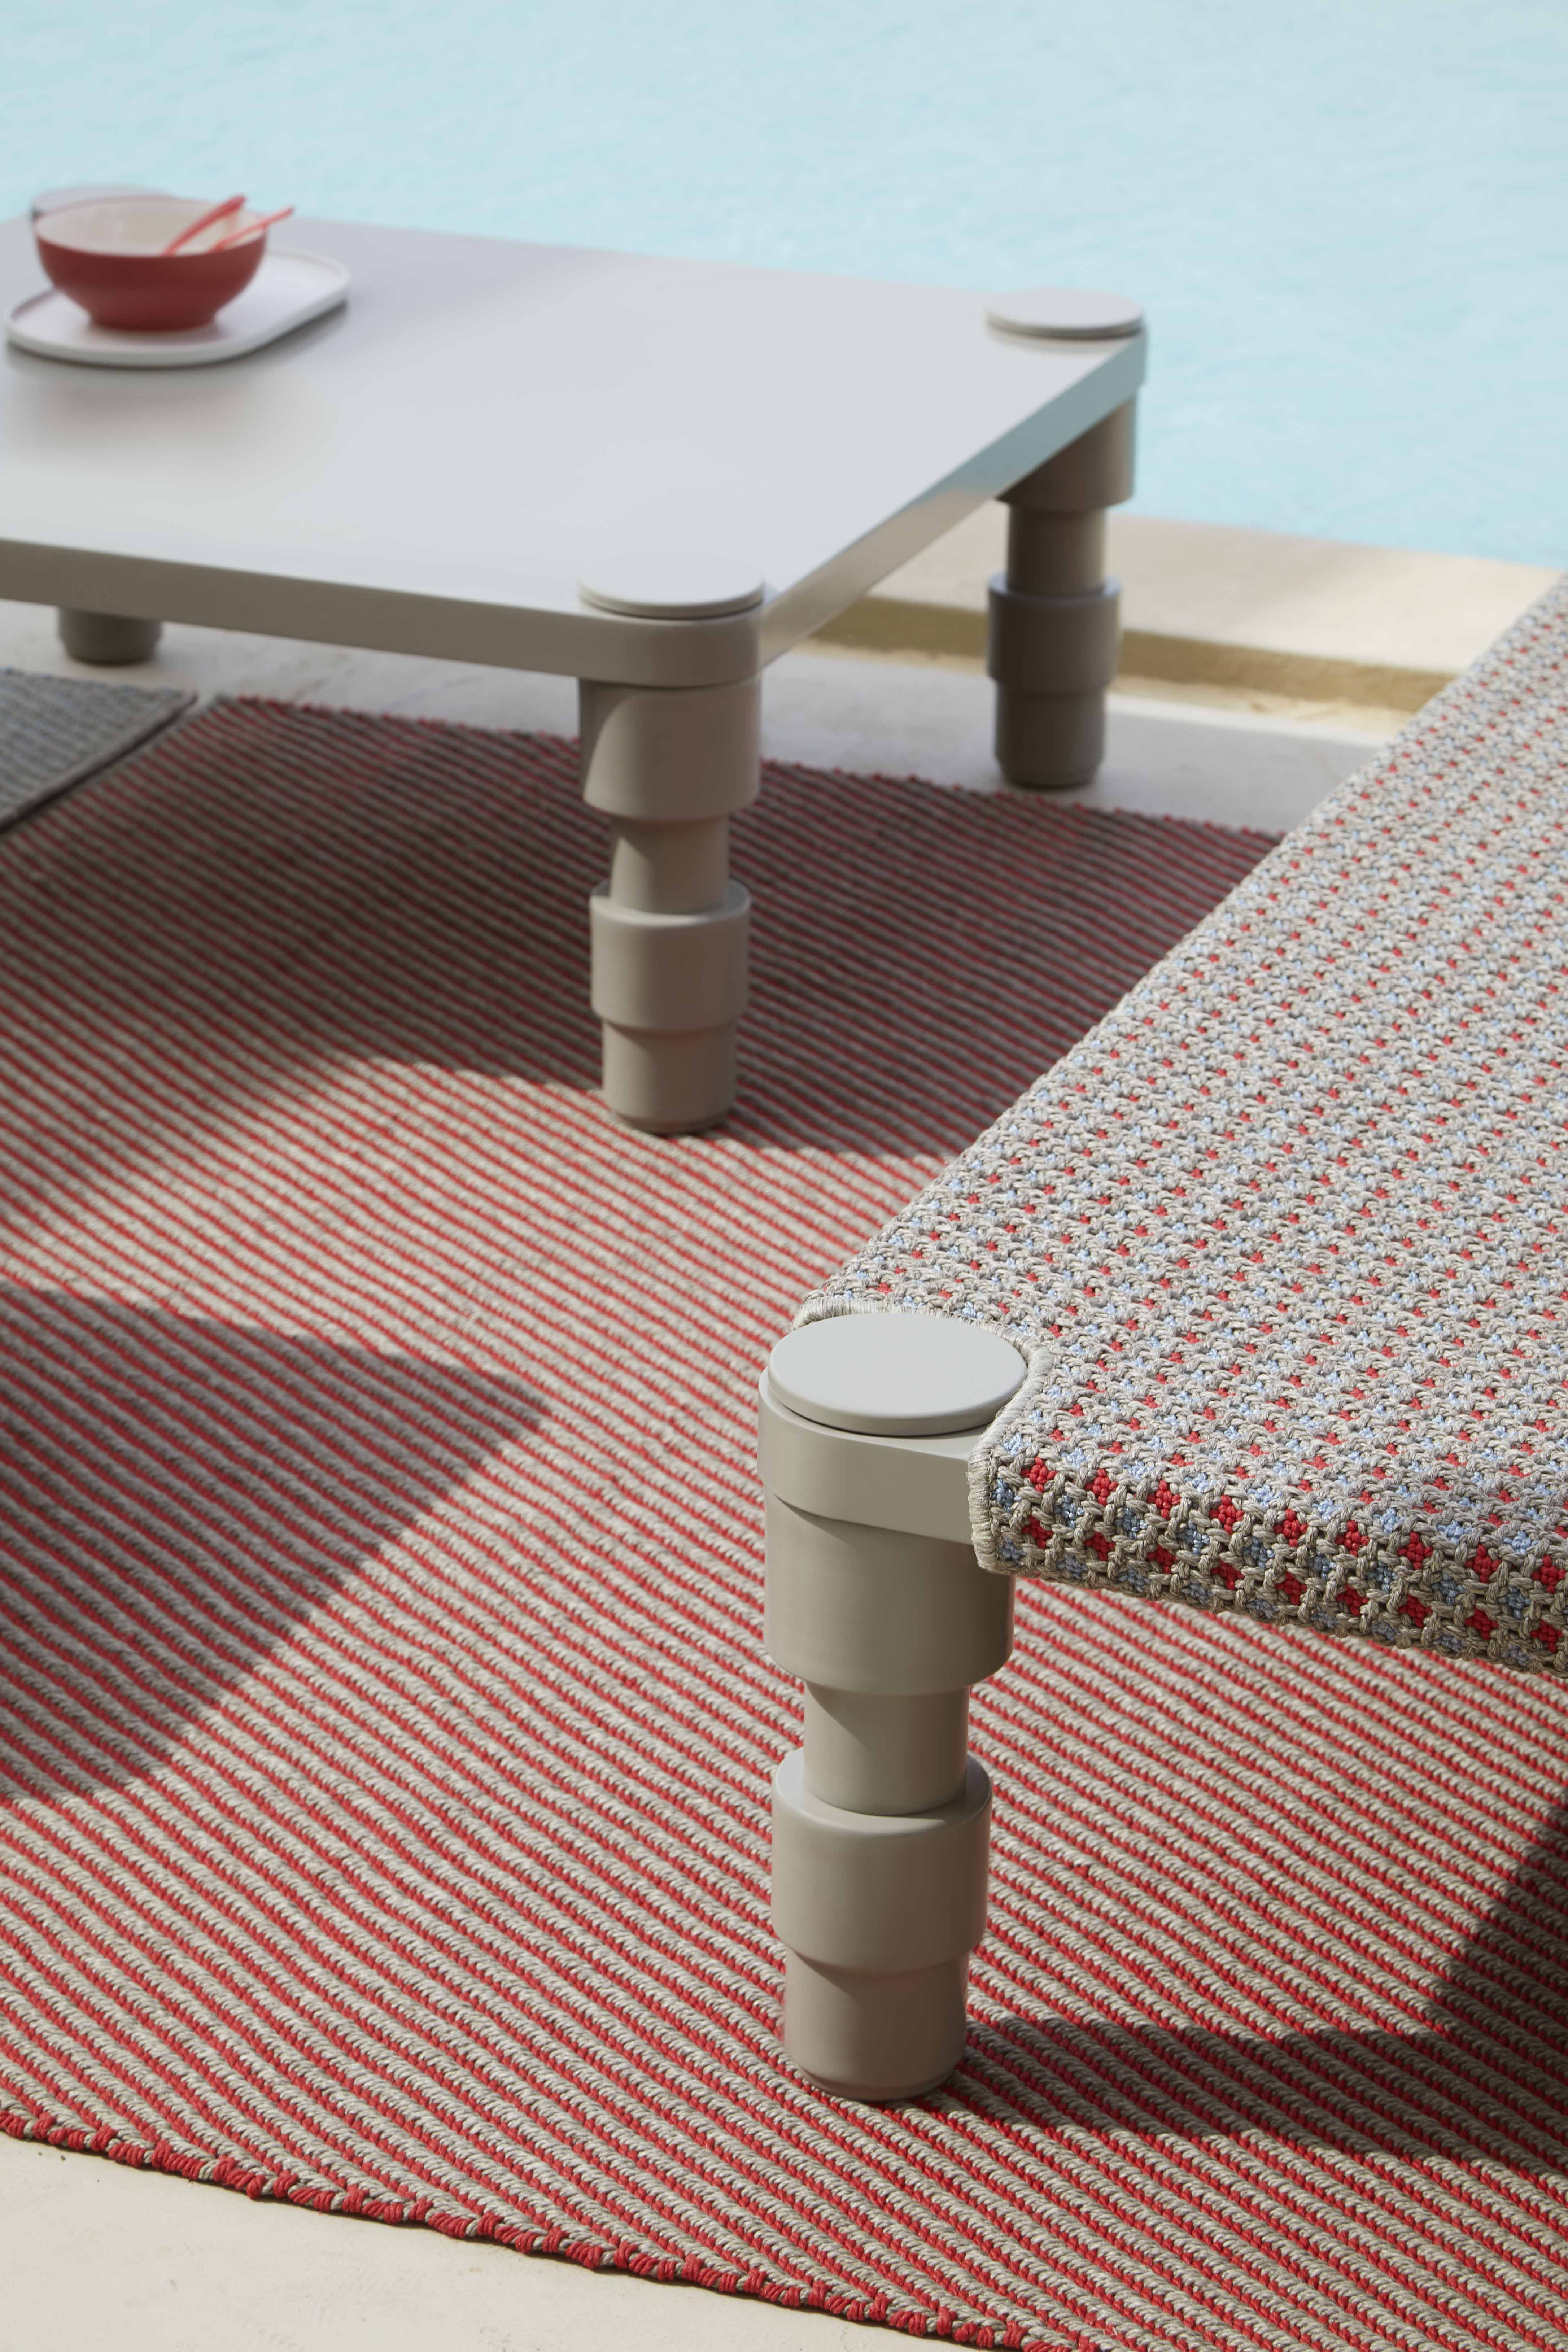 Garden Layers The First Outdoor Collection Of Gan Rugs Designed